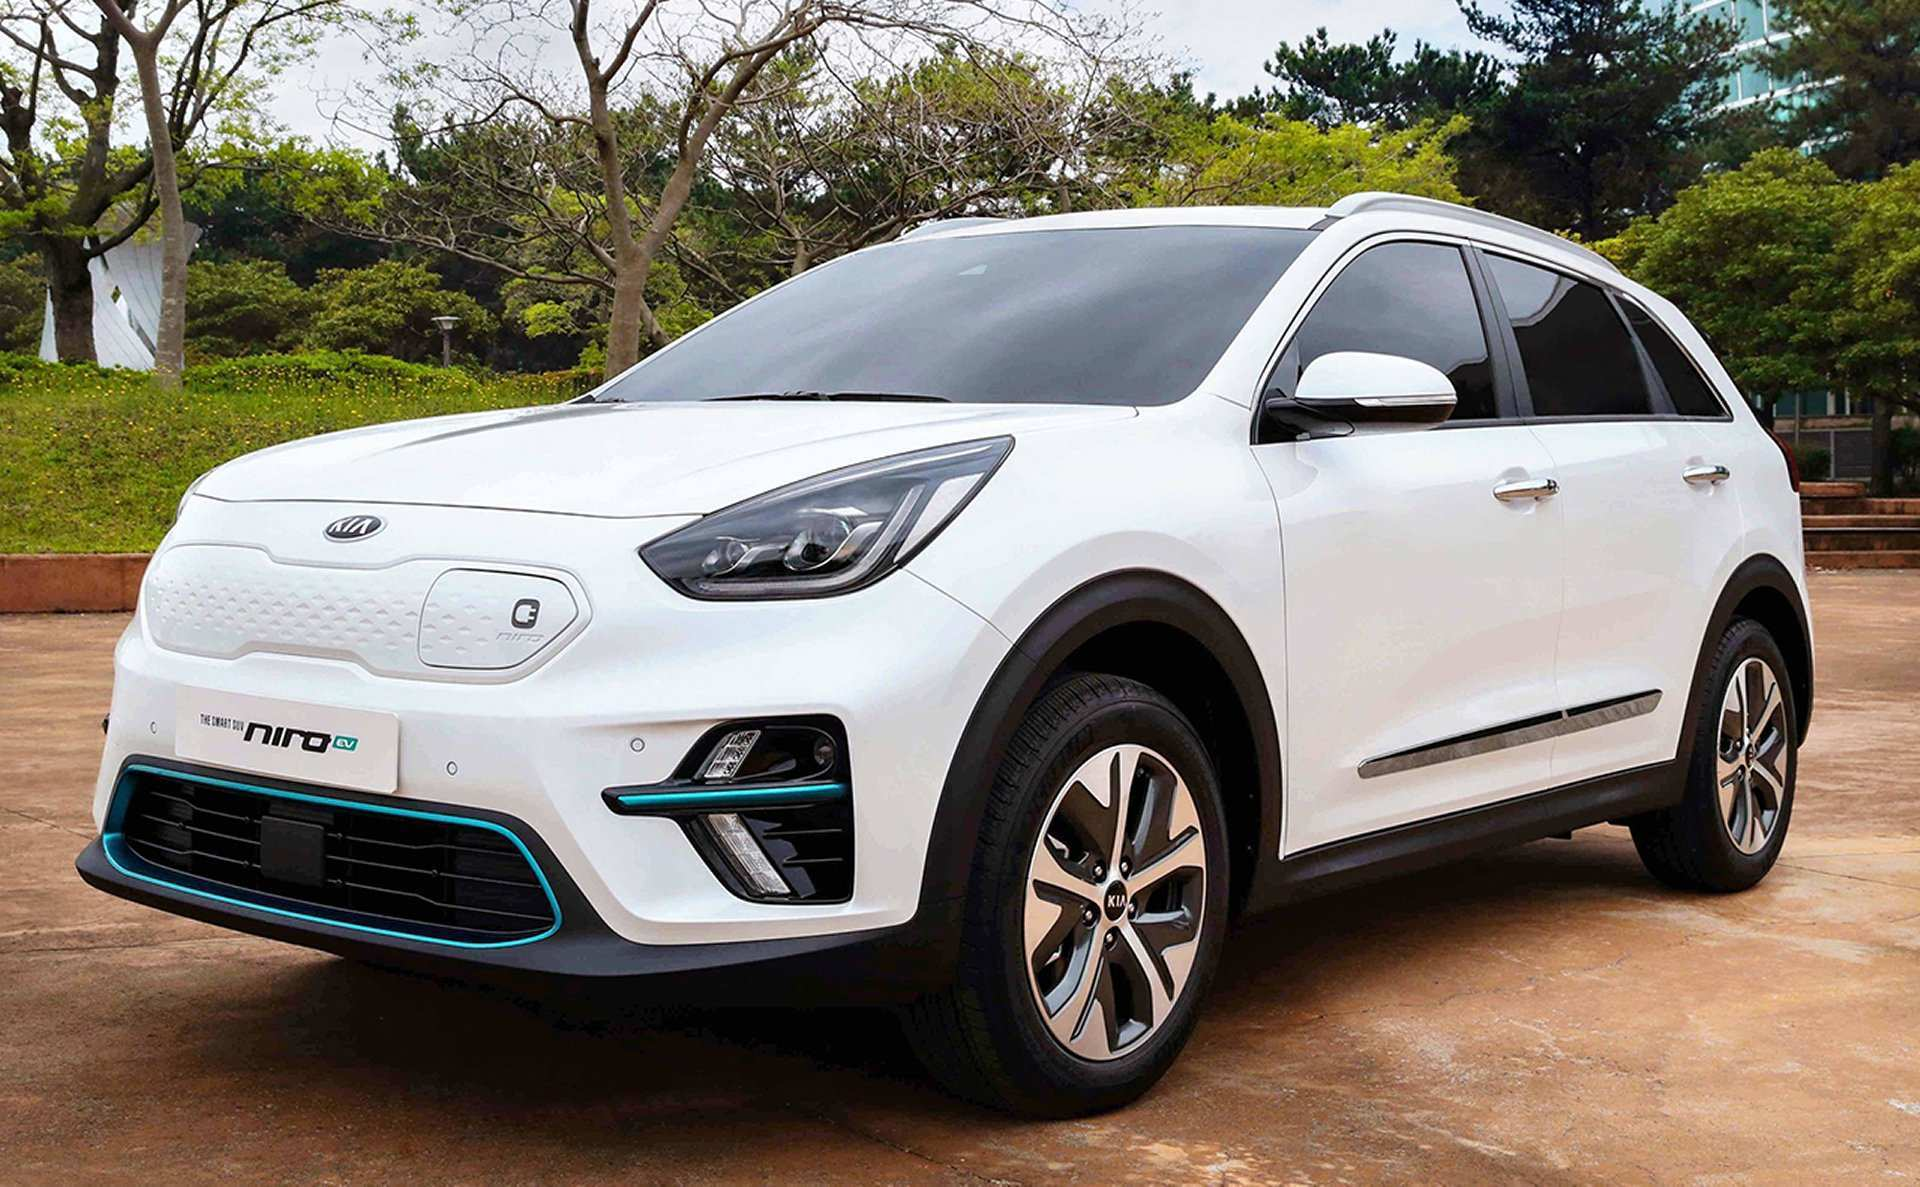 58 All New 2019 Kia Niro Ev Concept for 2019 Kia Niro Ev